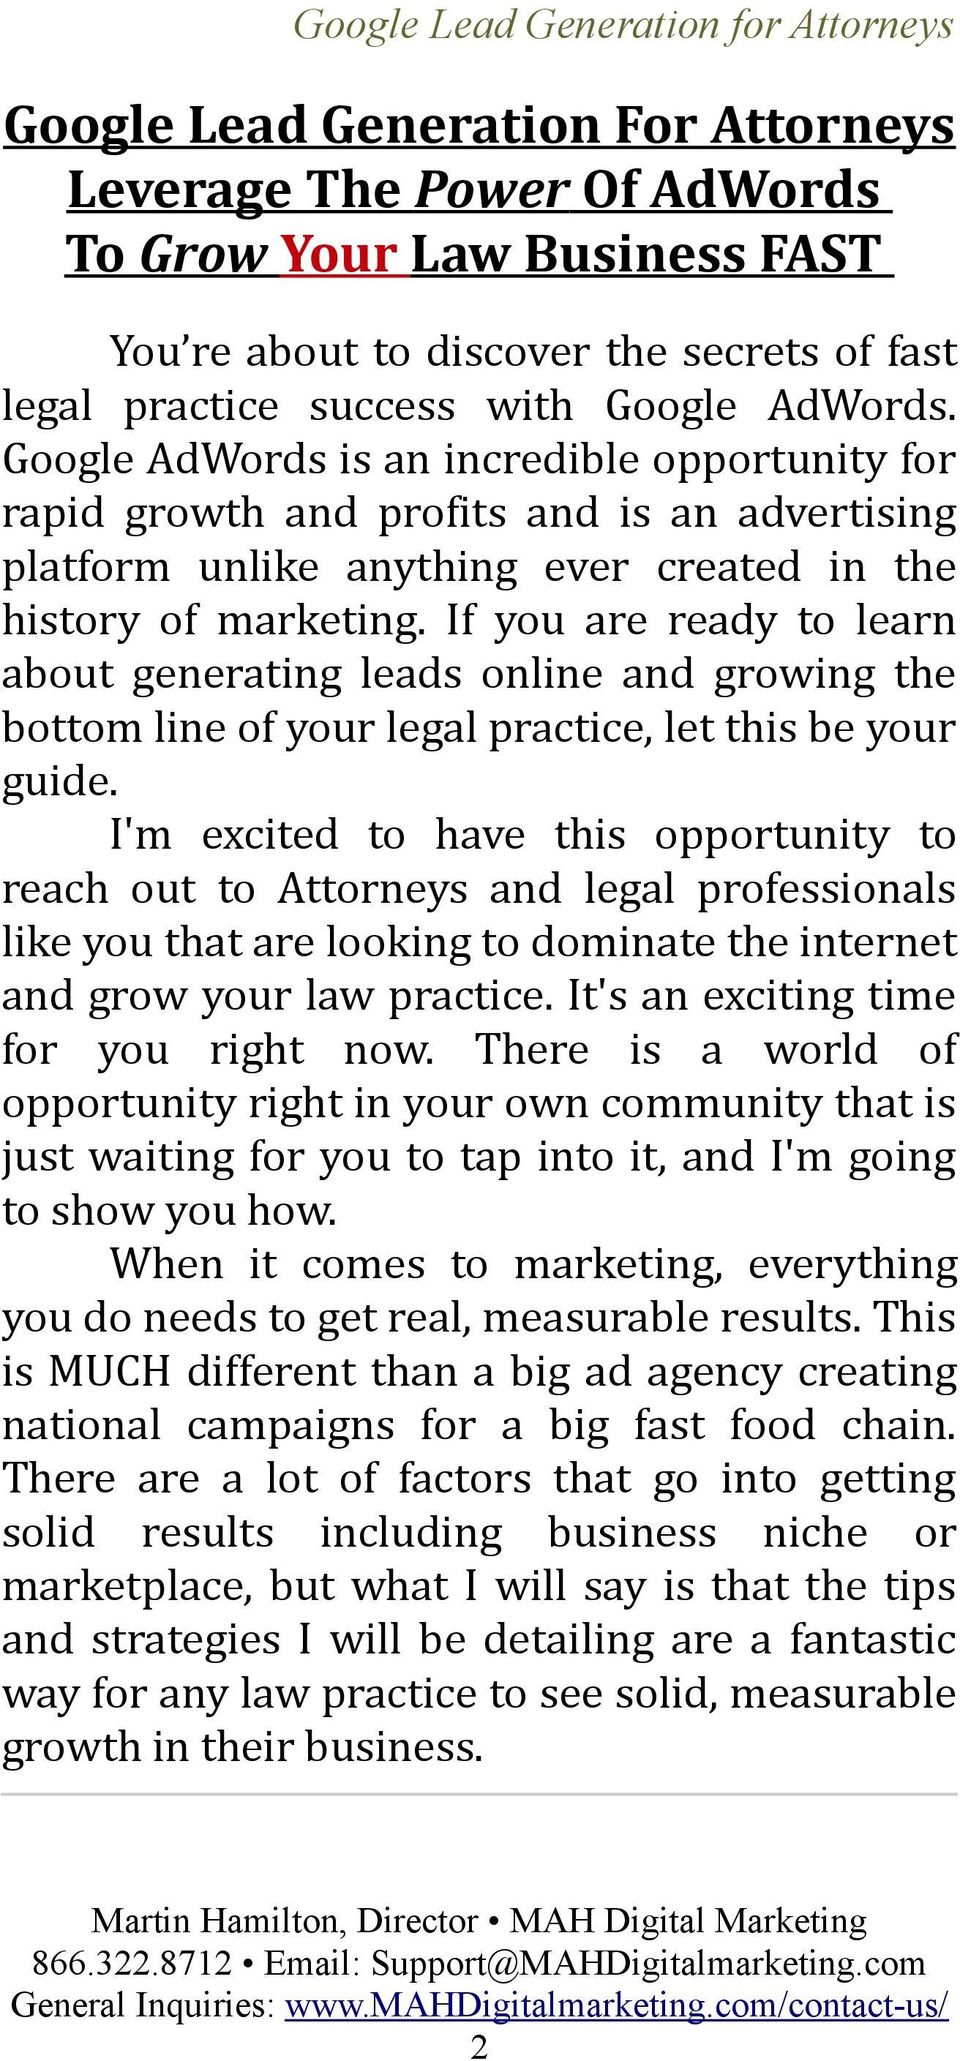 If you are ready to learn about generating leads online and growing the bottom line of your legal practice, let this be your guide.